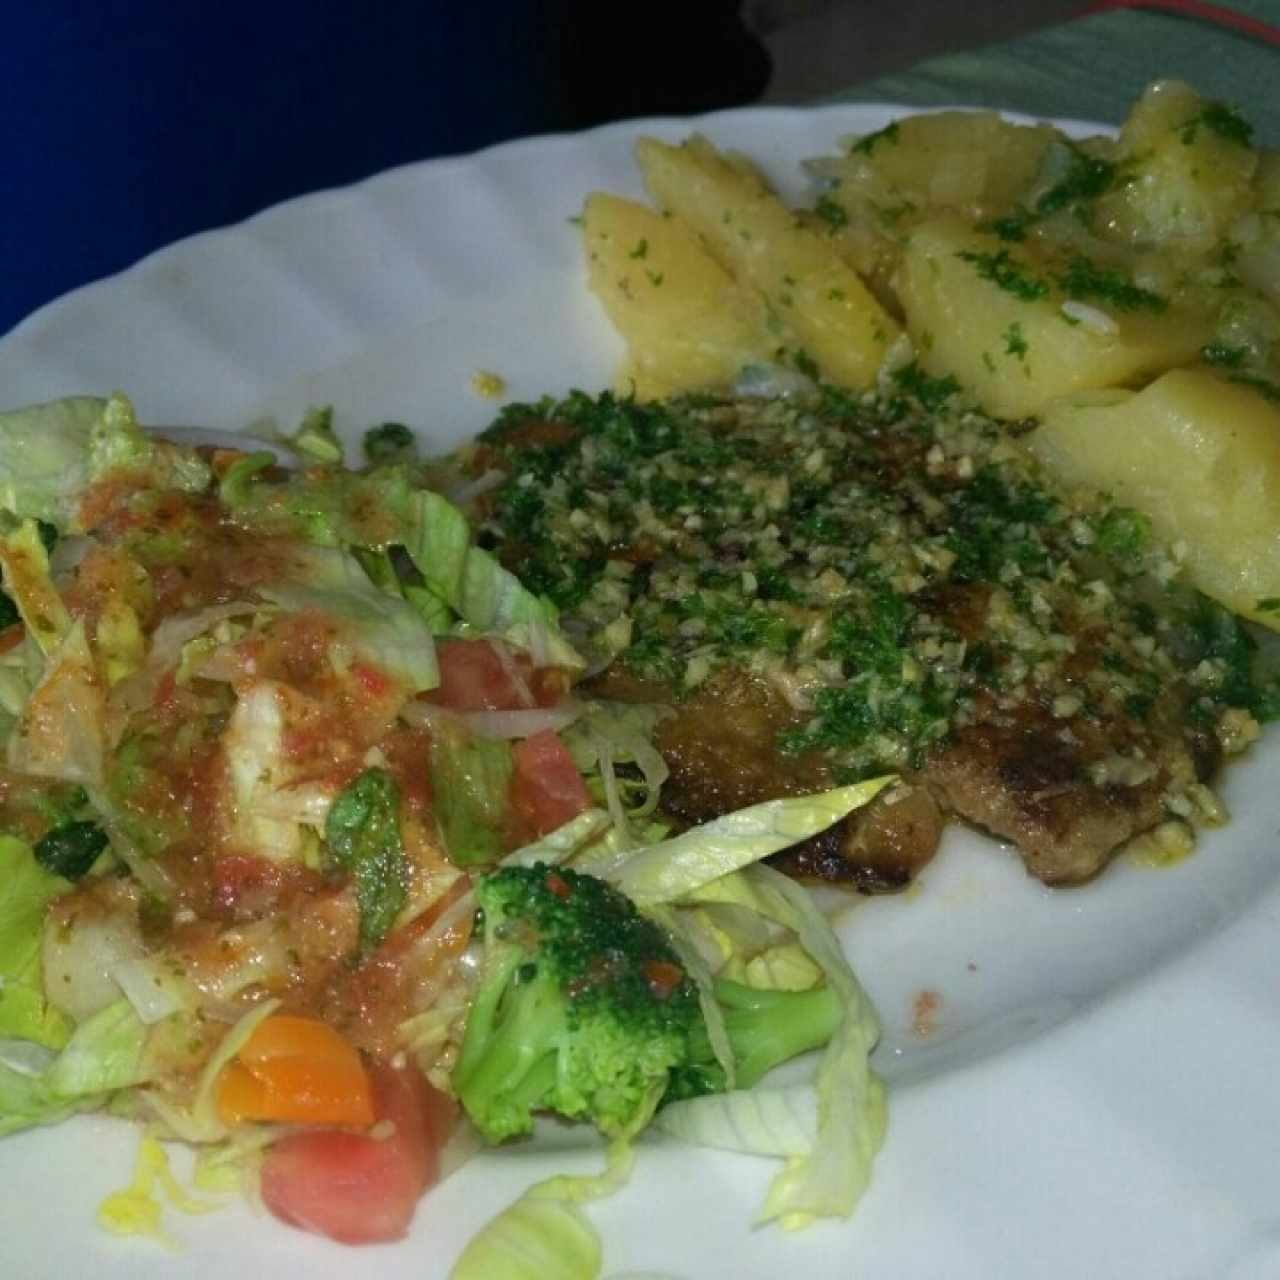 filete pescado con papas y ensalada